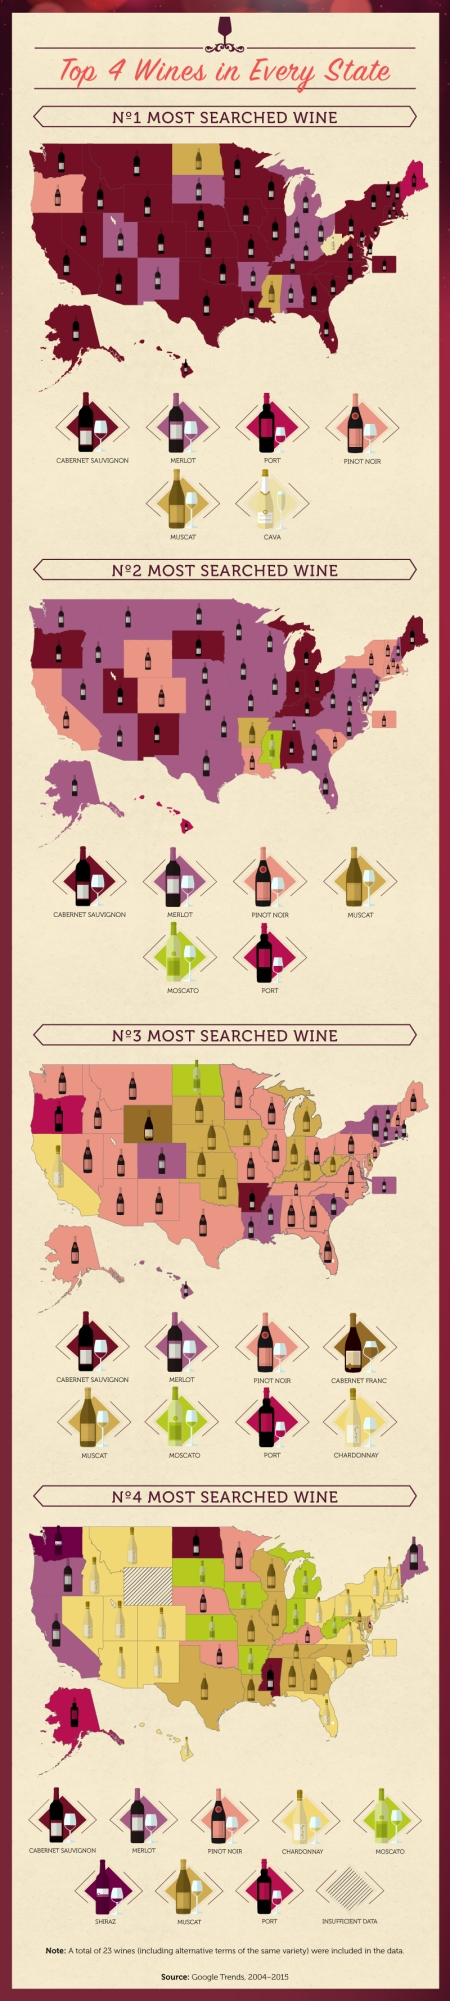 11-most-searched-wines-franklin-liquors